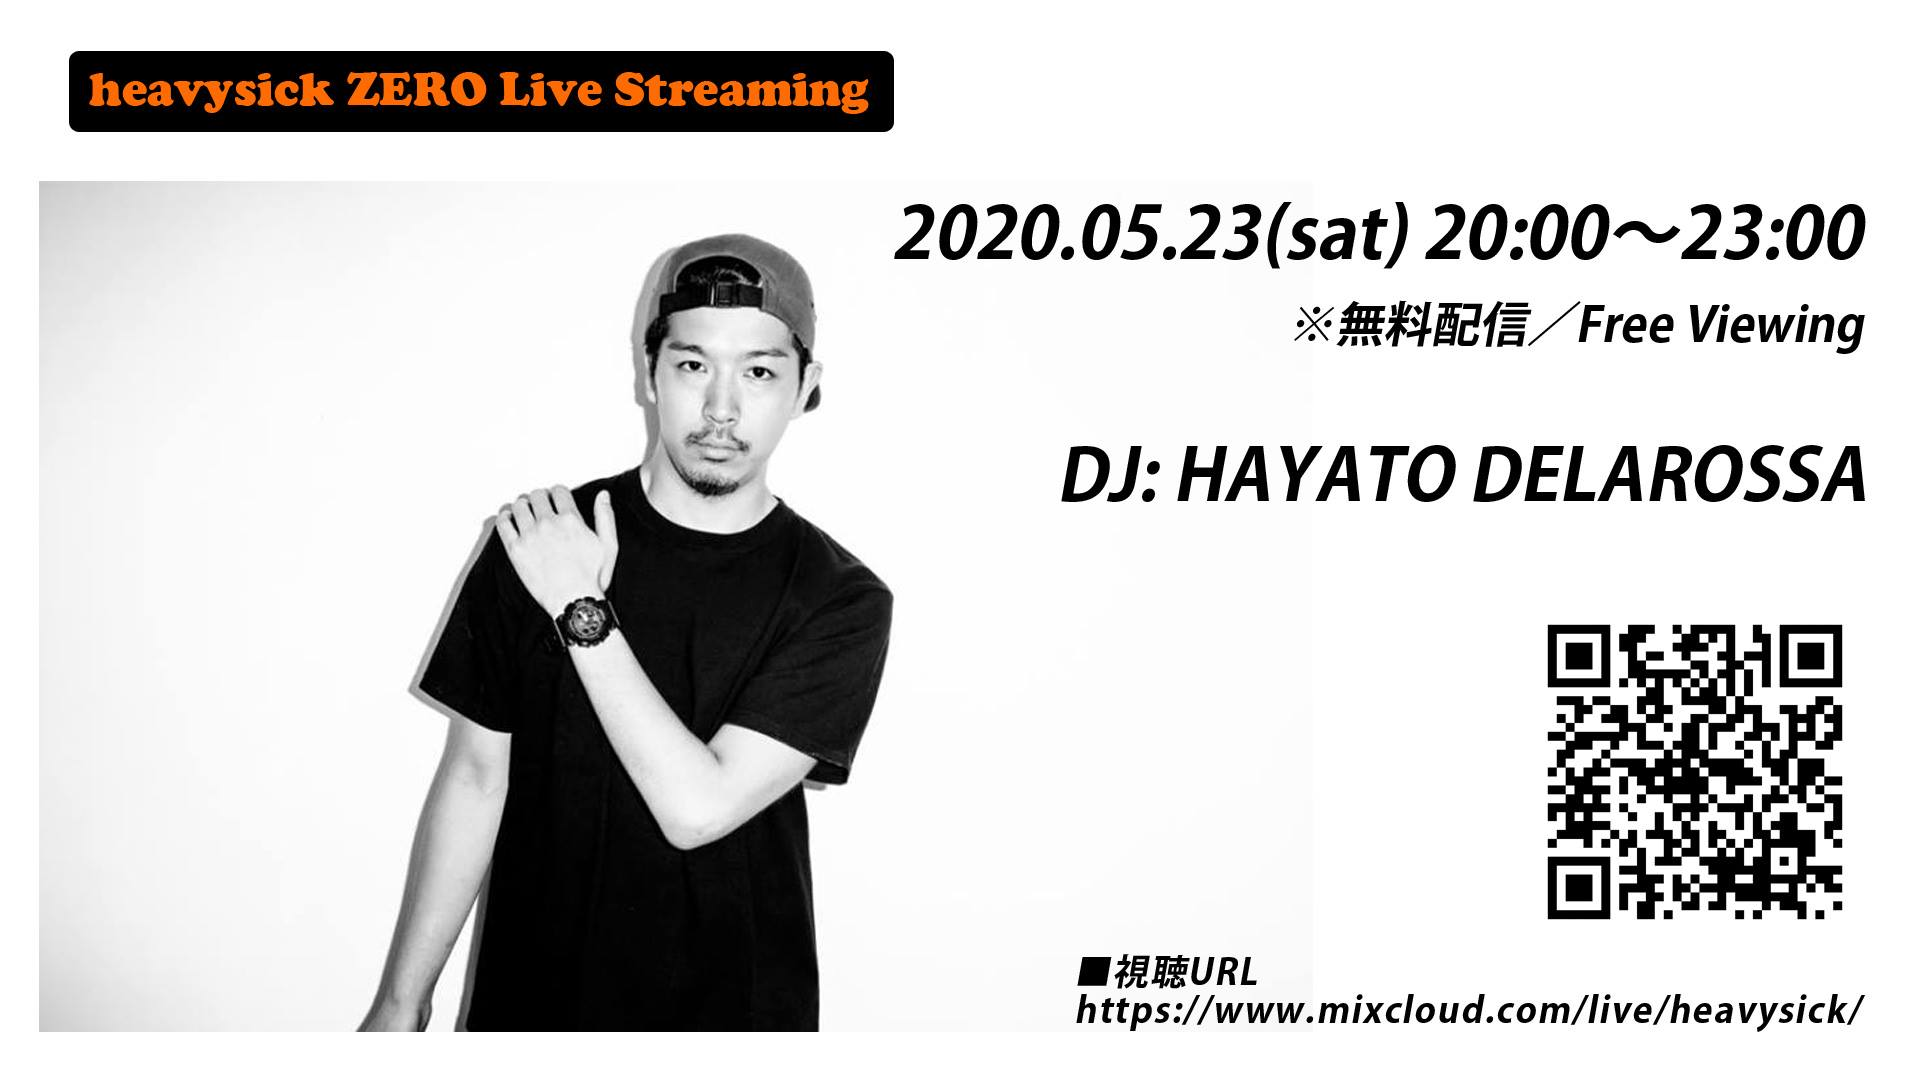 2020.05.23(Sat) heavysick ZERO Live Streaming